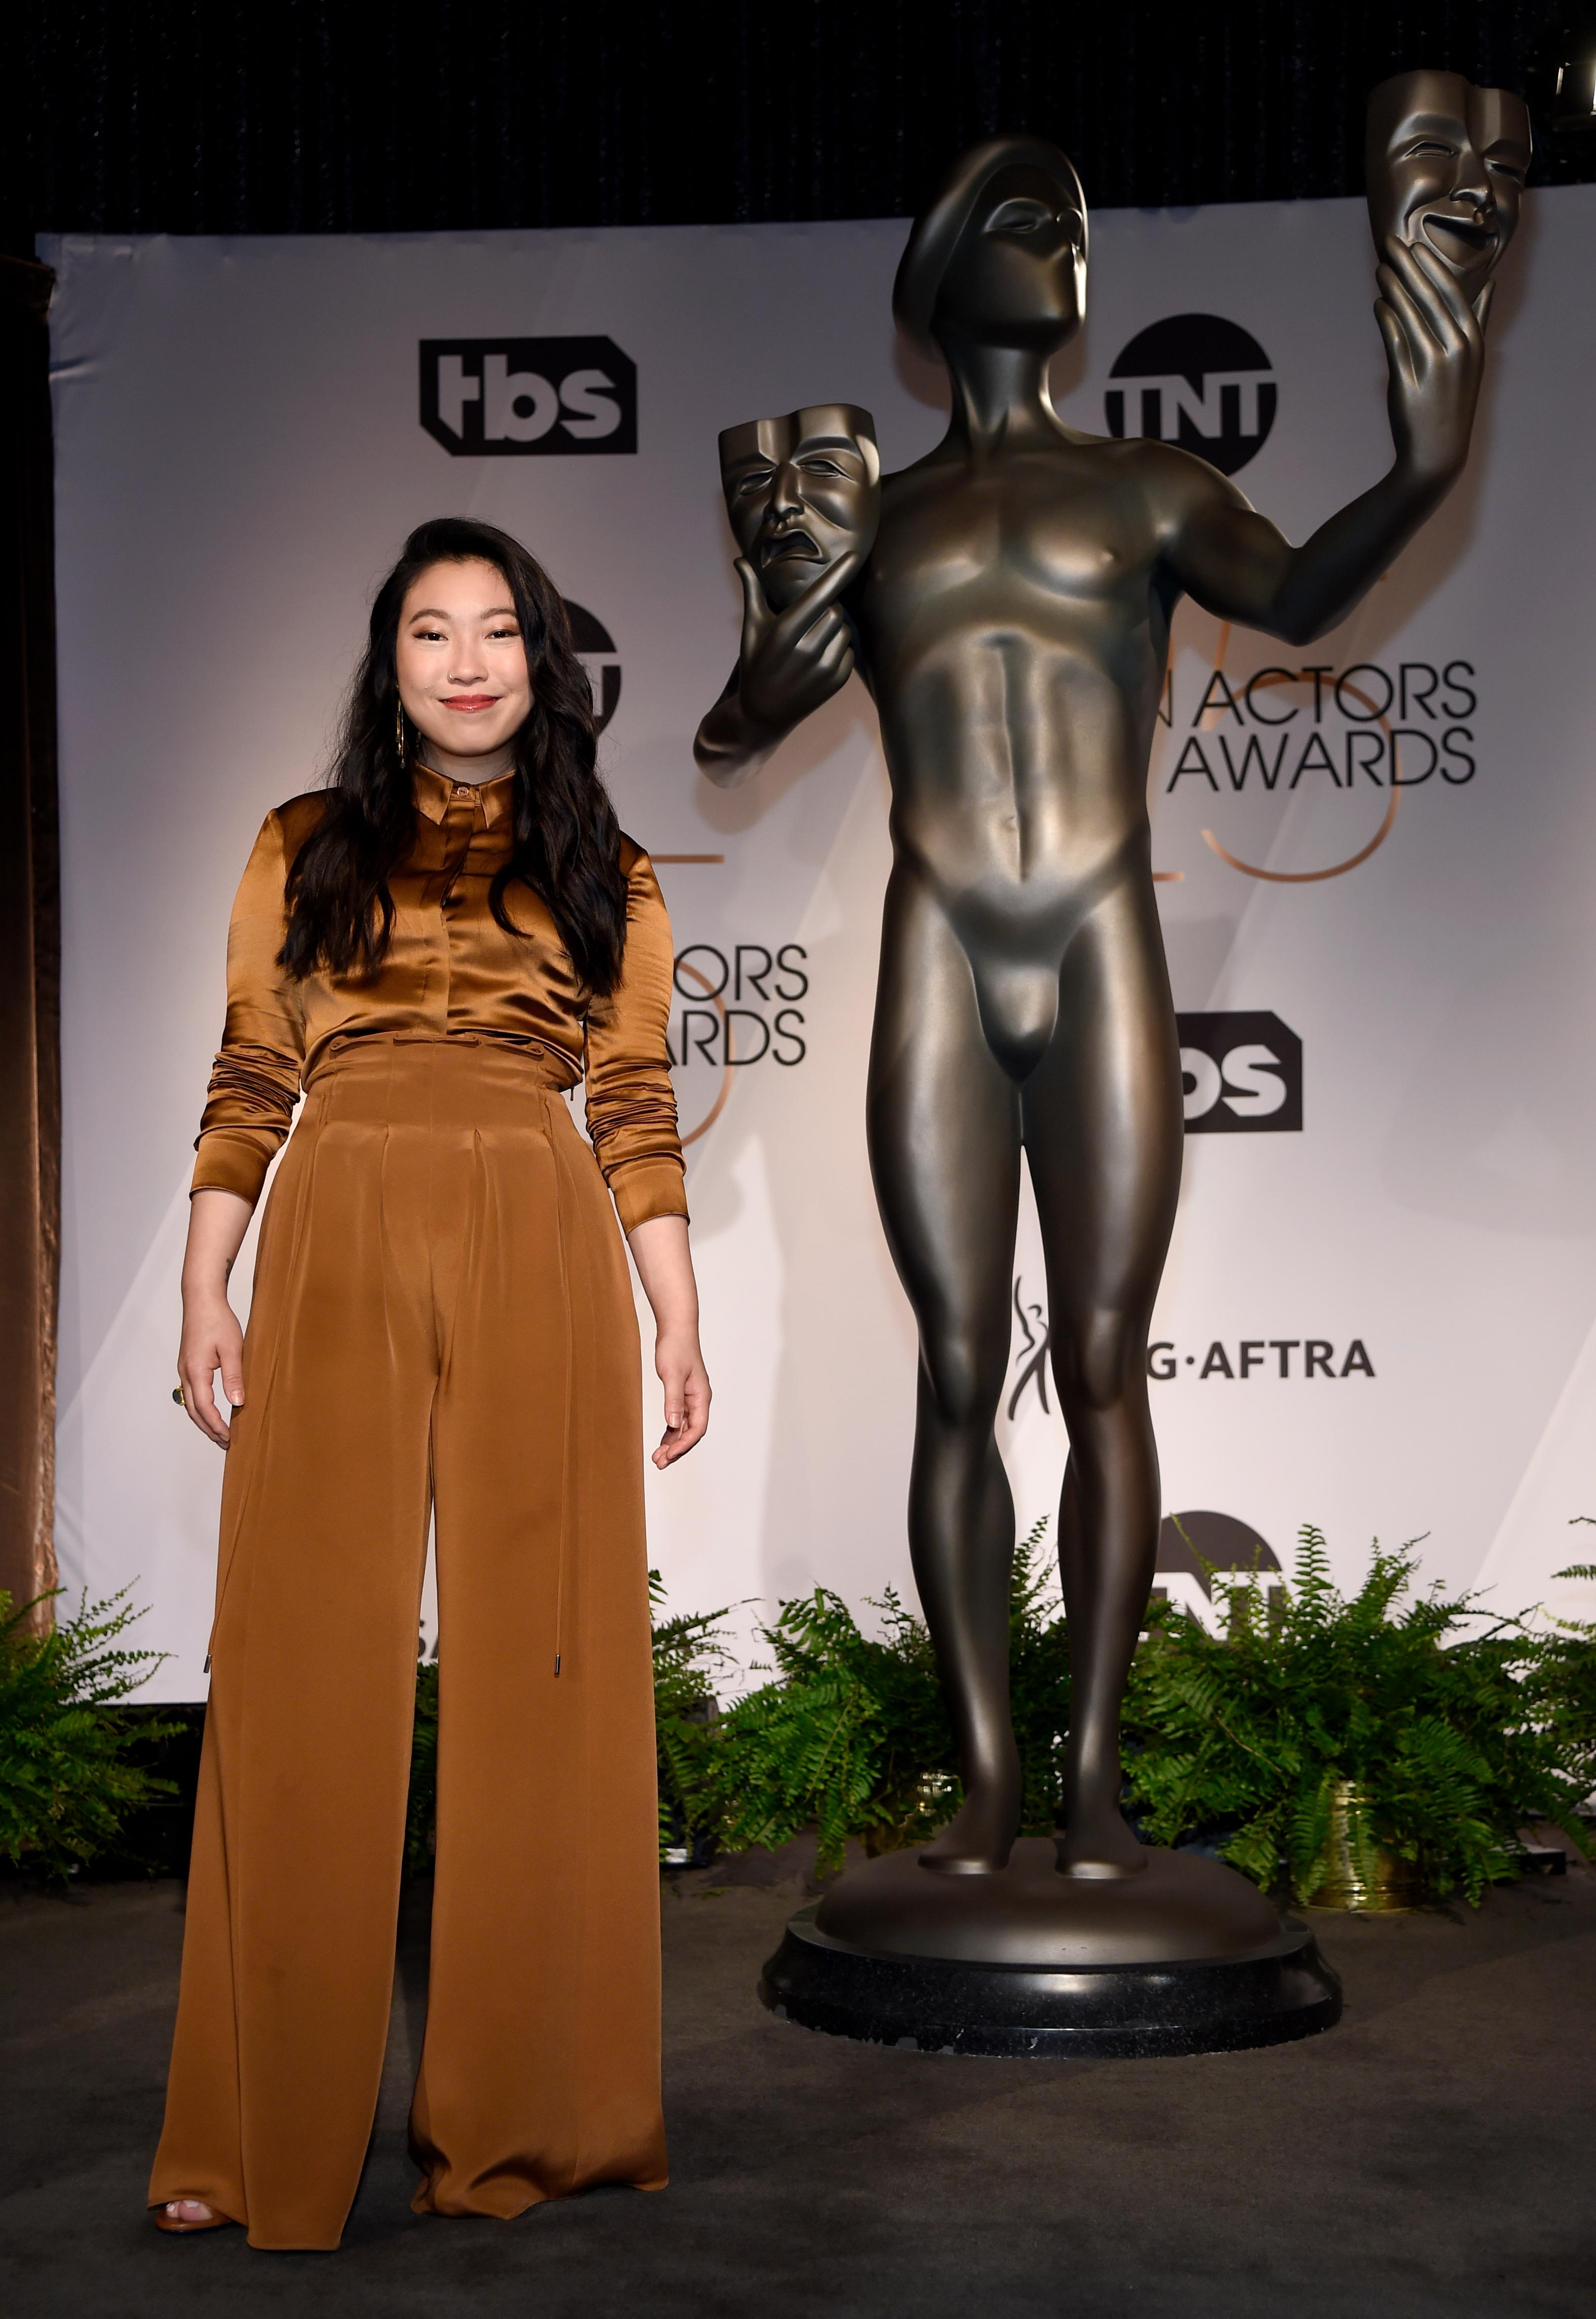 Awkwafina poses following the nominations announcement for the 25th annual Screen Actors Guild Awards at the Pacific Design Center on Wednesday, Dec. 12, 2018, in West Hollywood, Calif. (Photo by Chris Pizzello/Invision/AP)